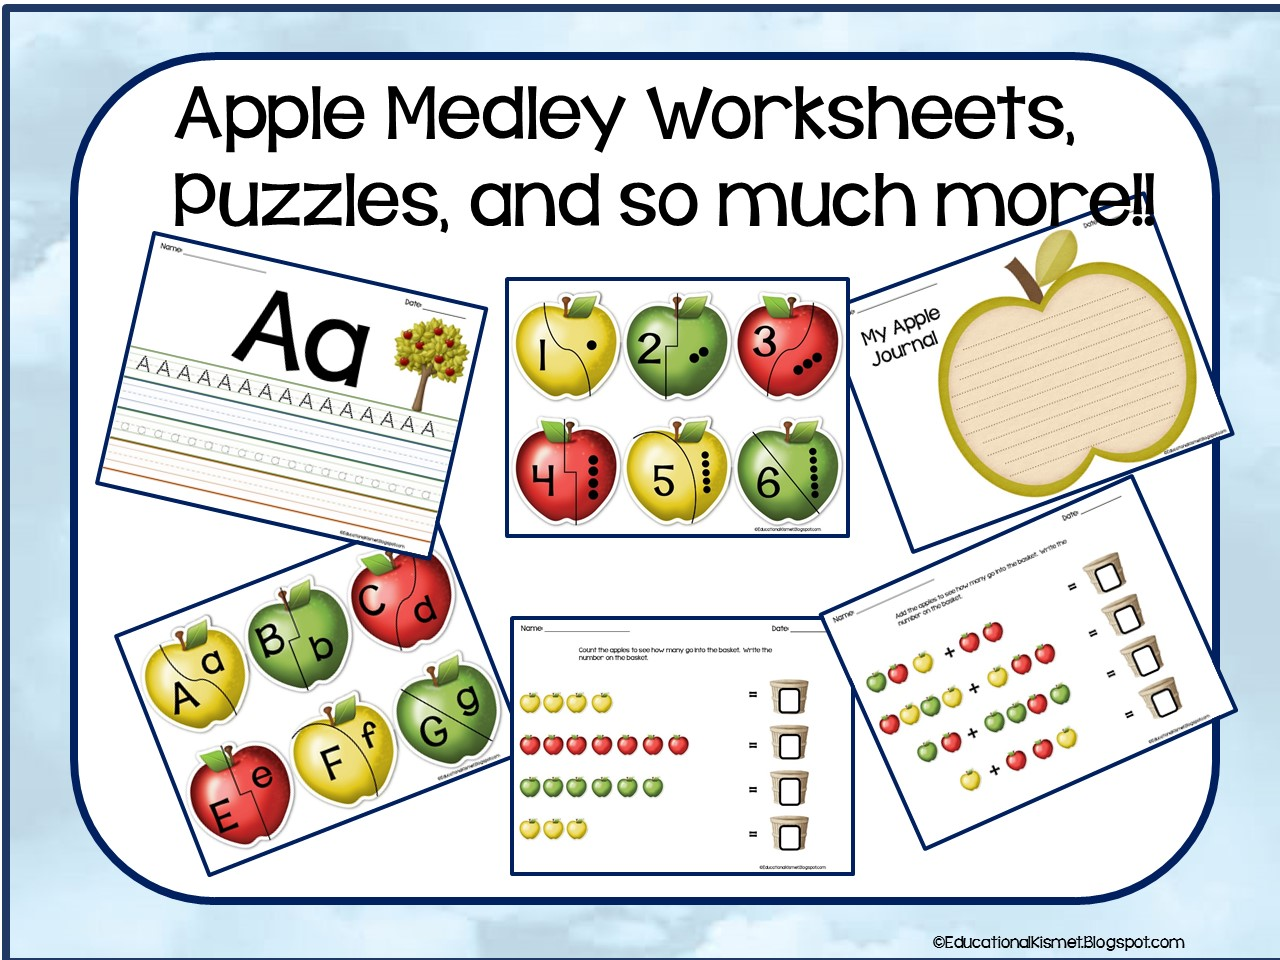 Educational Kismet Apple Medley Worksheets Puzzles And